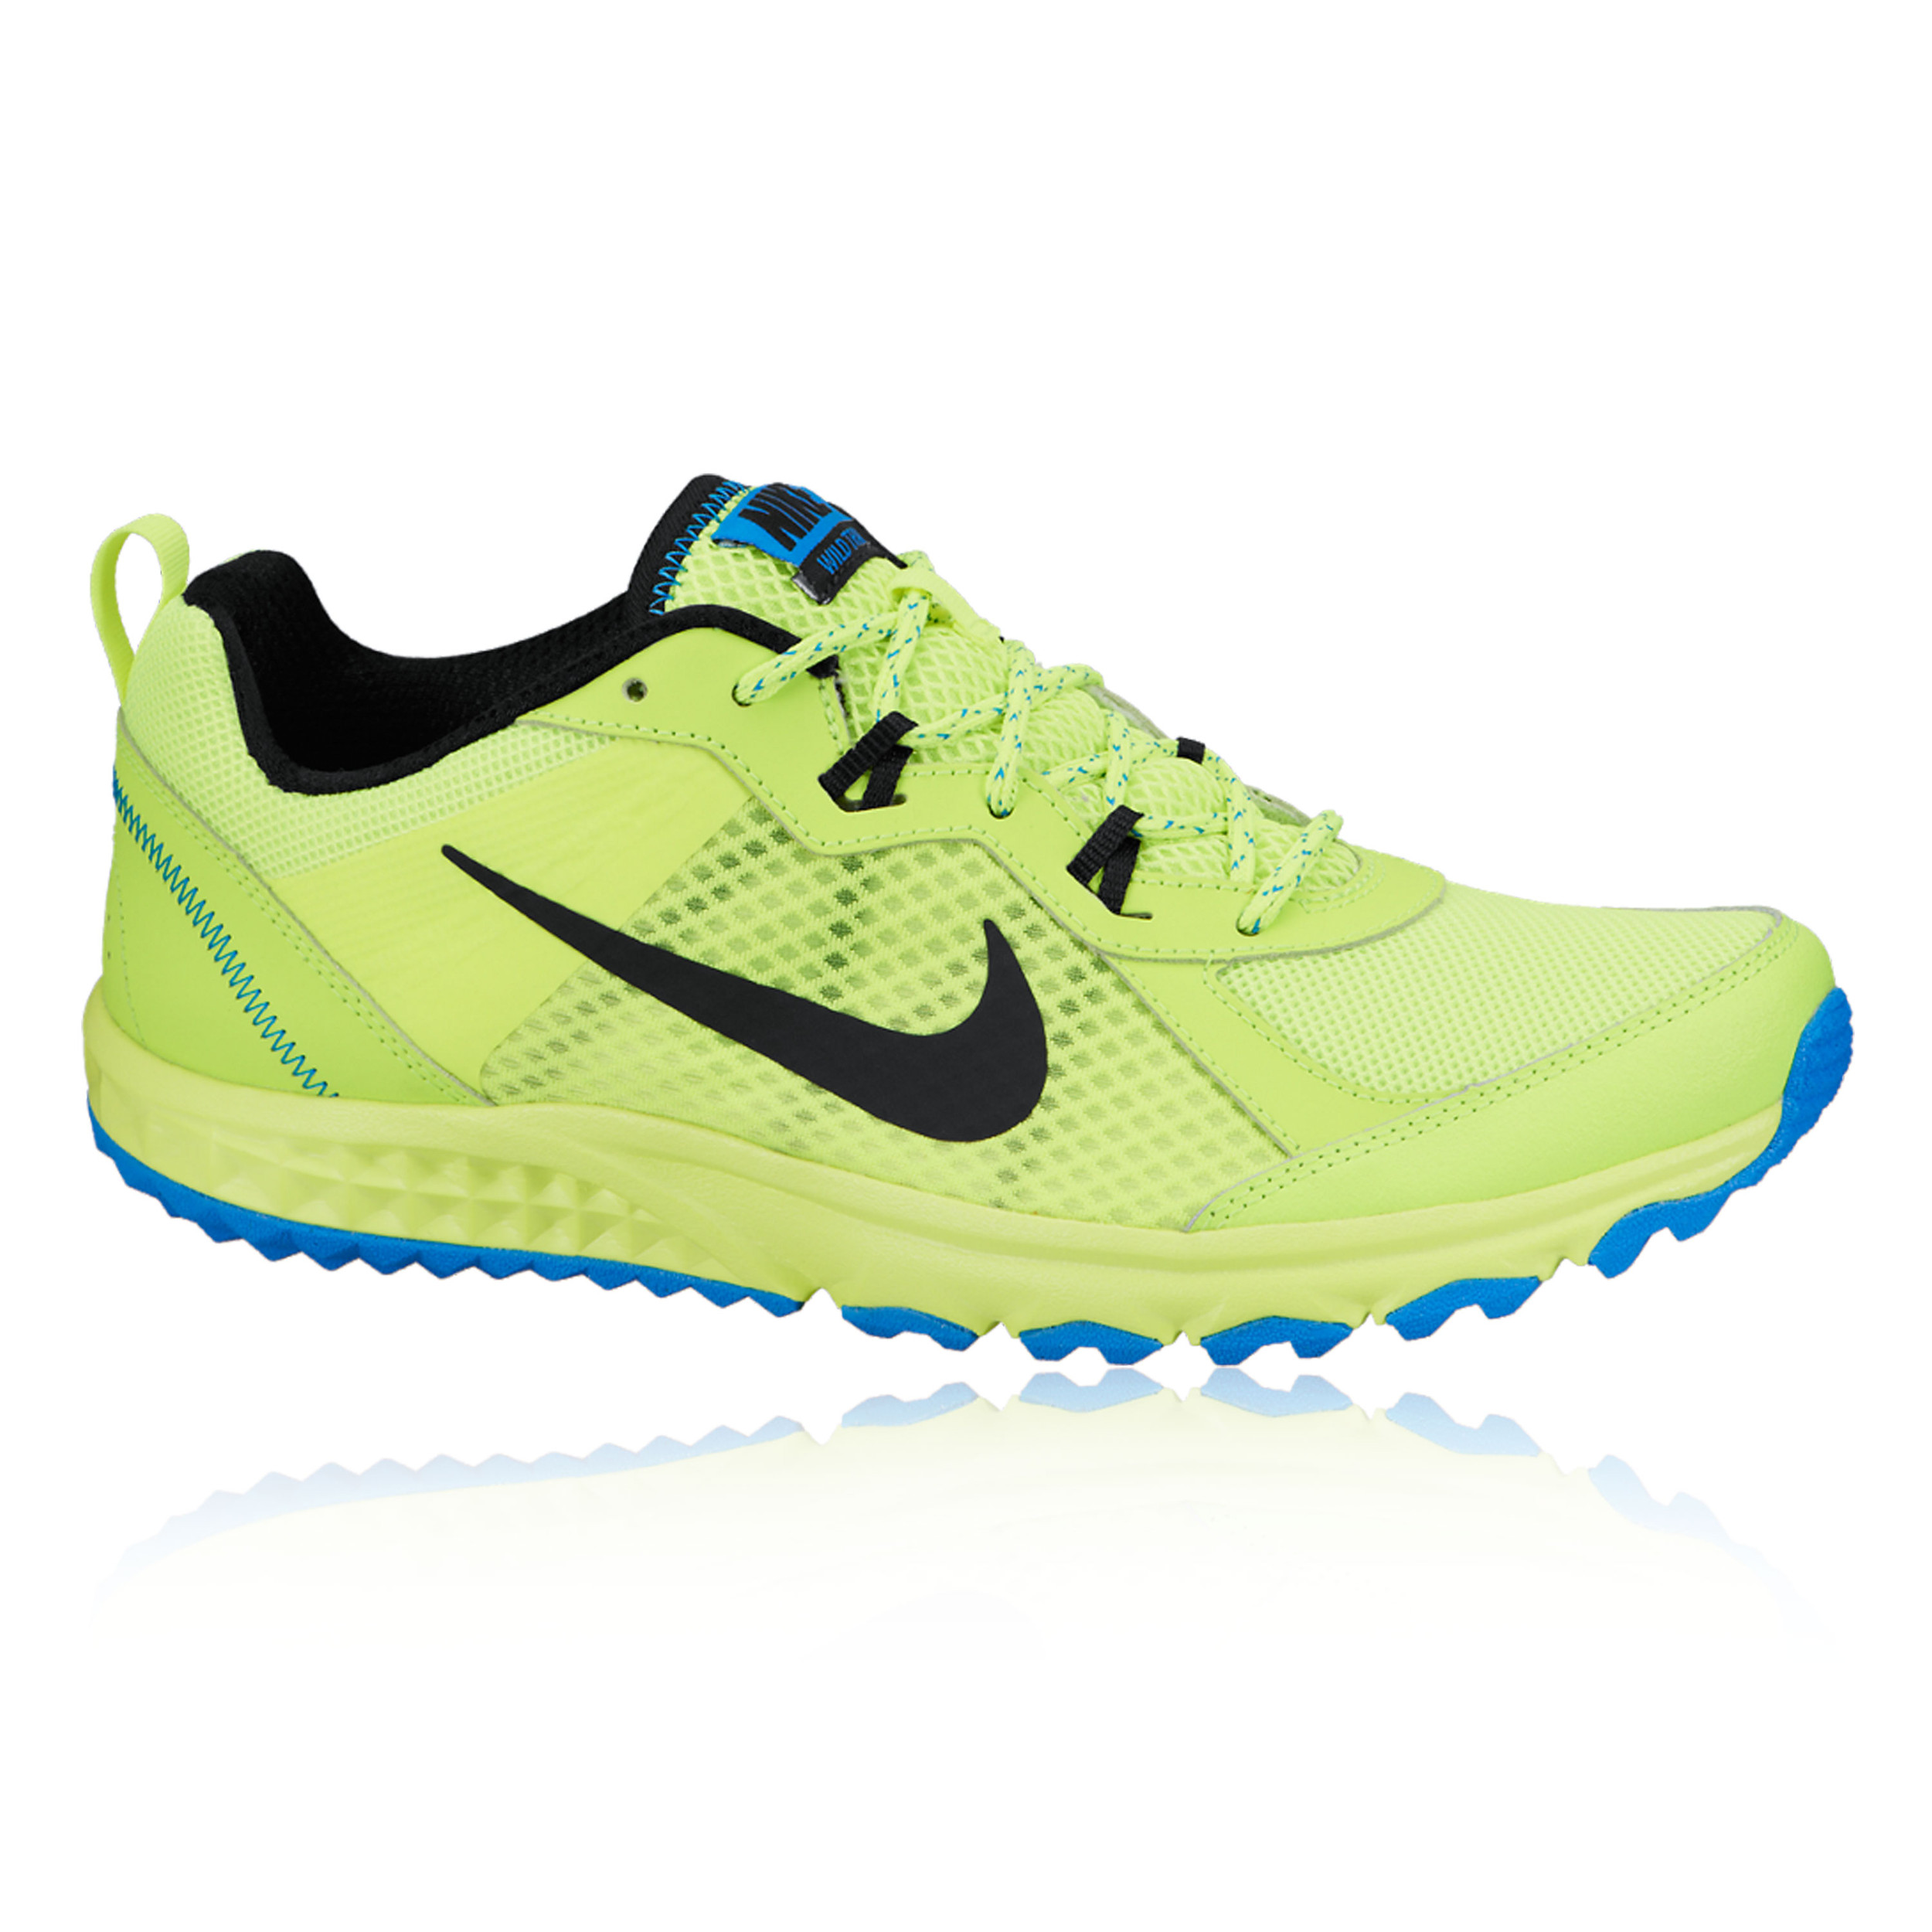 Awesome Nike Lunarfly+ 3 Trail - Womens Trail Running Shoes - Grey/Pink/Yellow Online | Sportitude